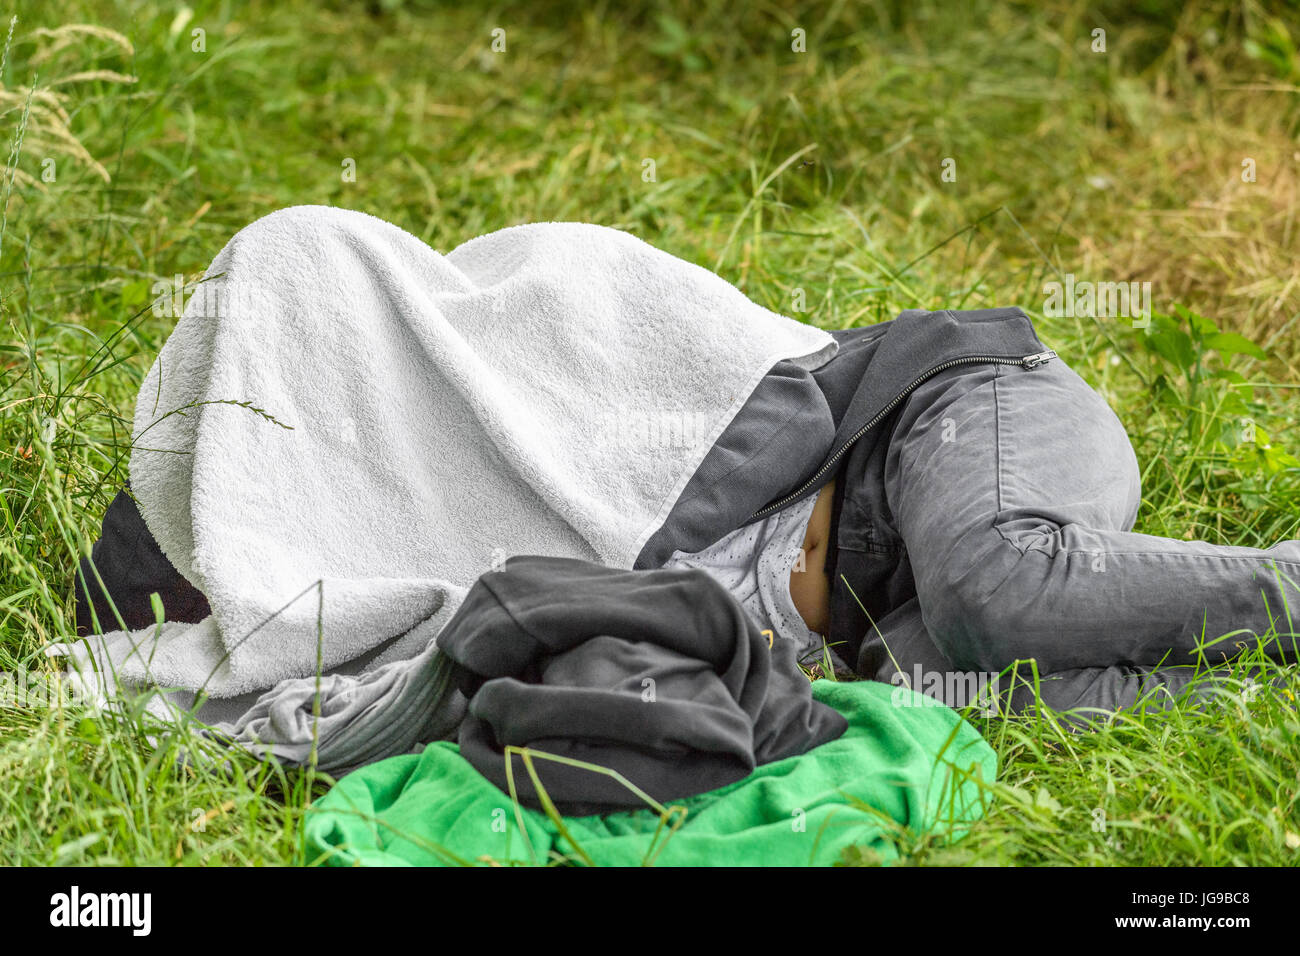 Boy hides his head under a towel either to shut himself off from others or to have a  quiet snooze. - Stock Image